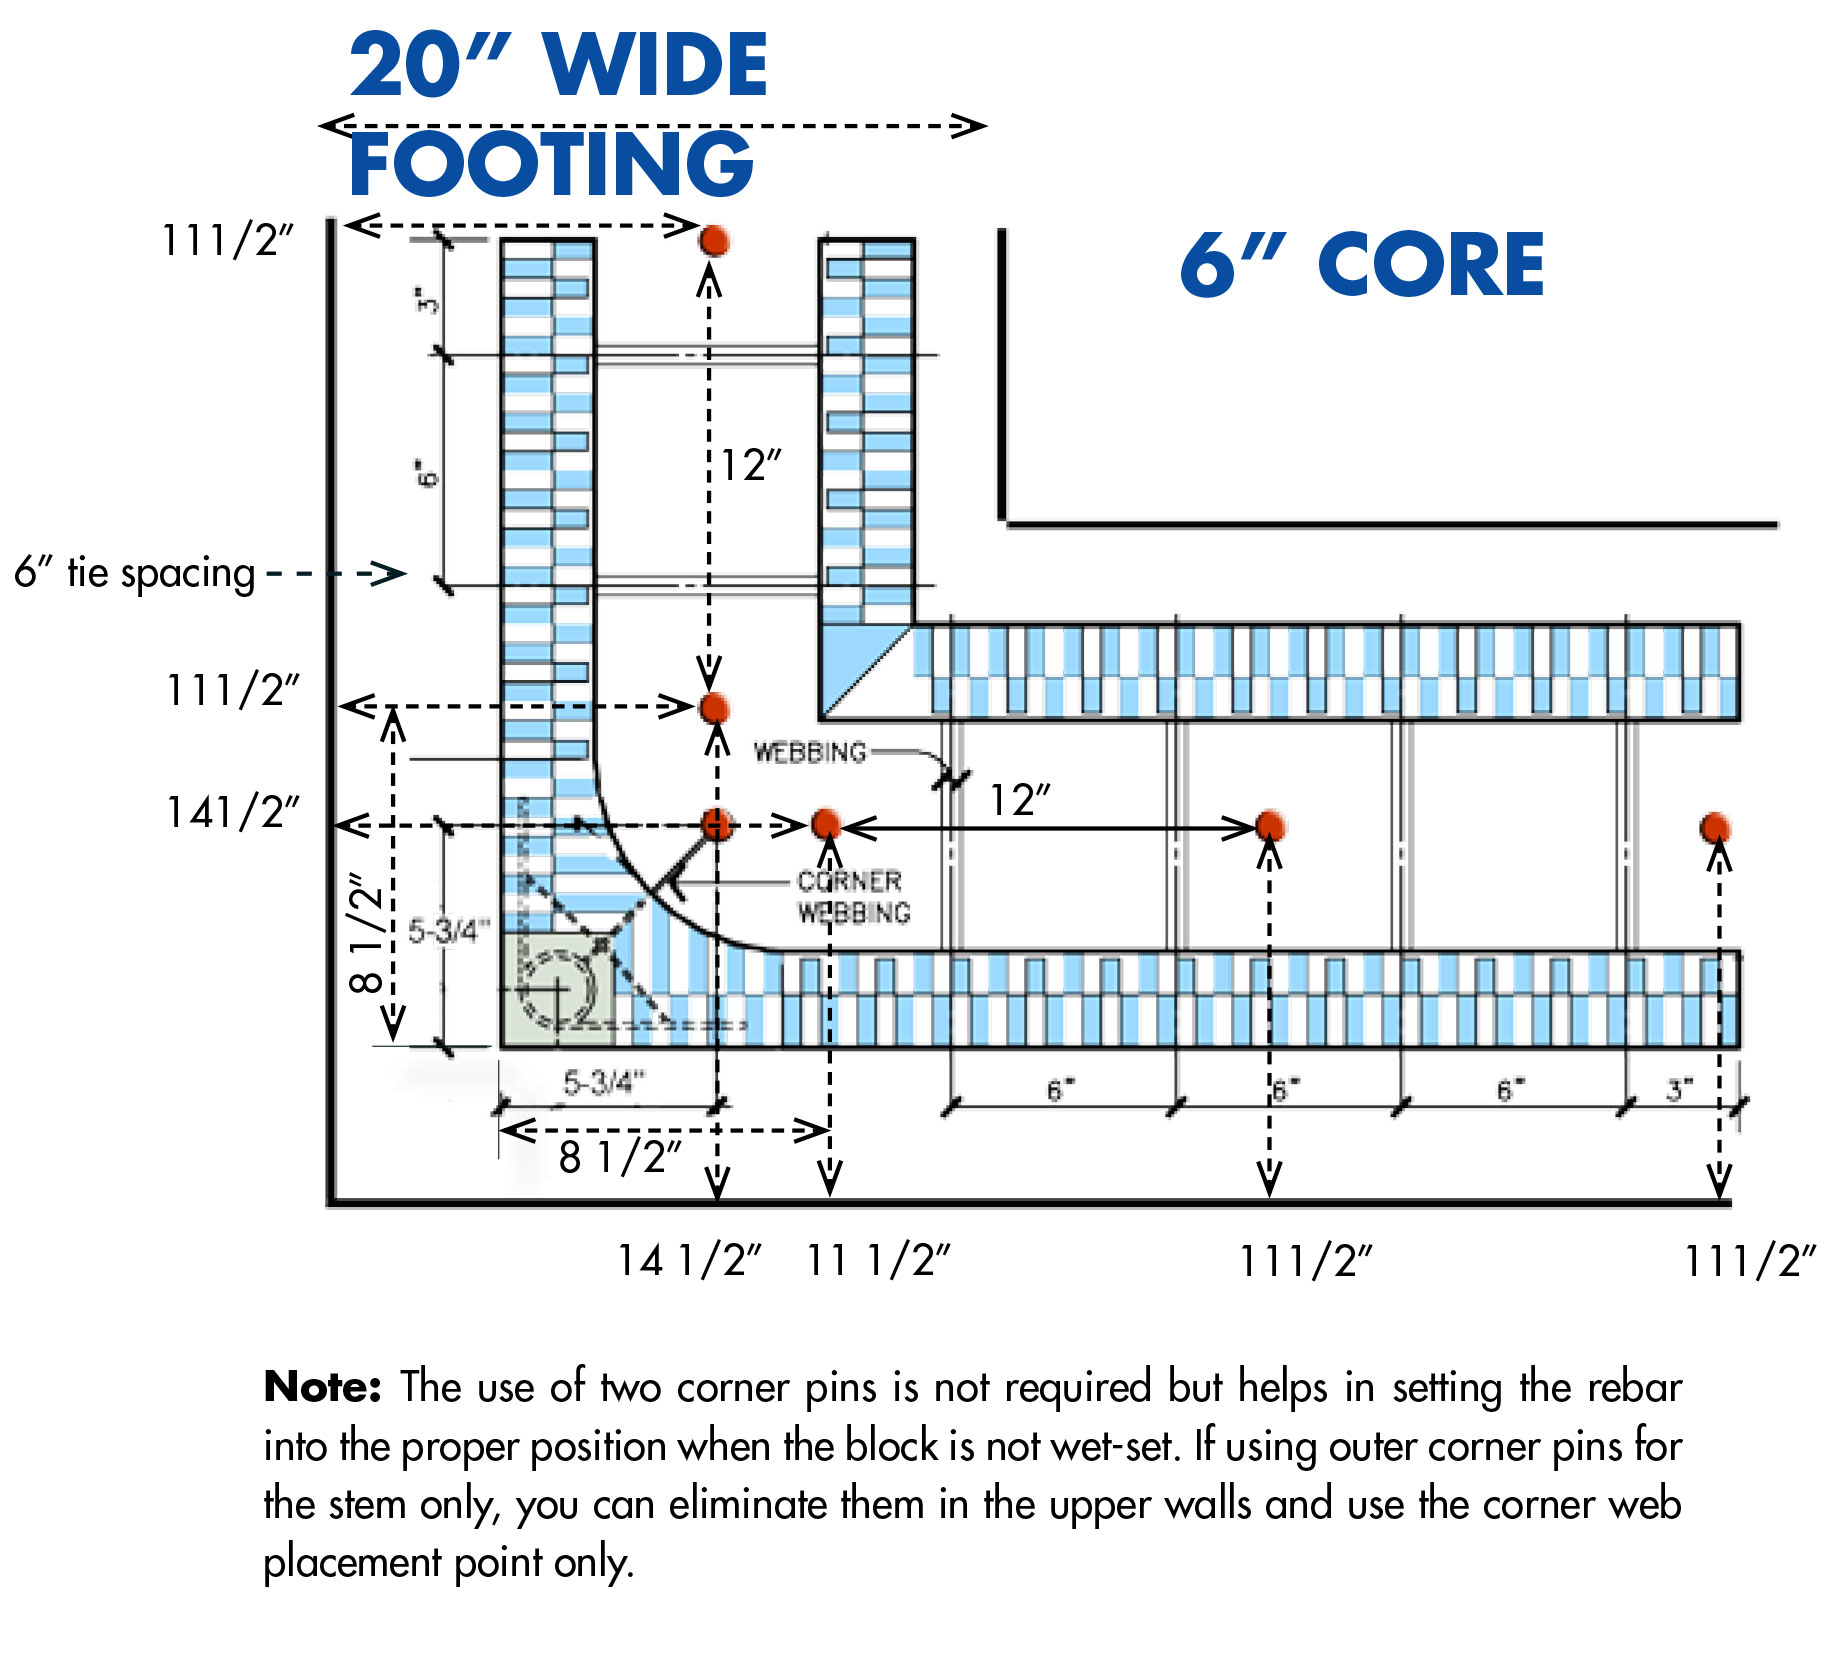 Buildblock icfs building footings to applicable codes for Footing size for 2 story house